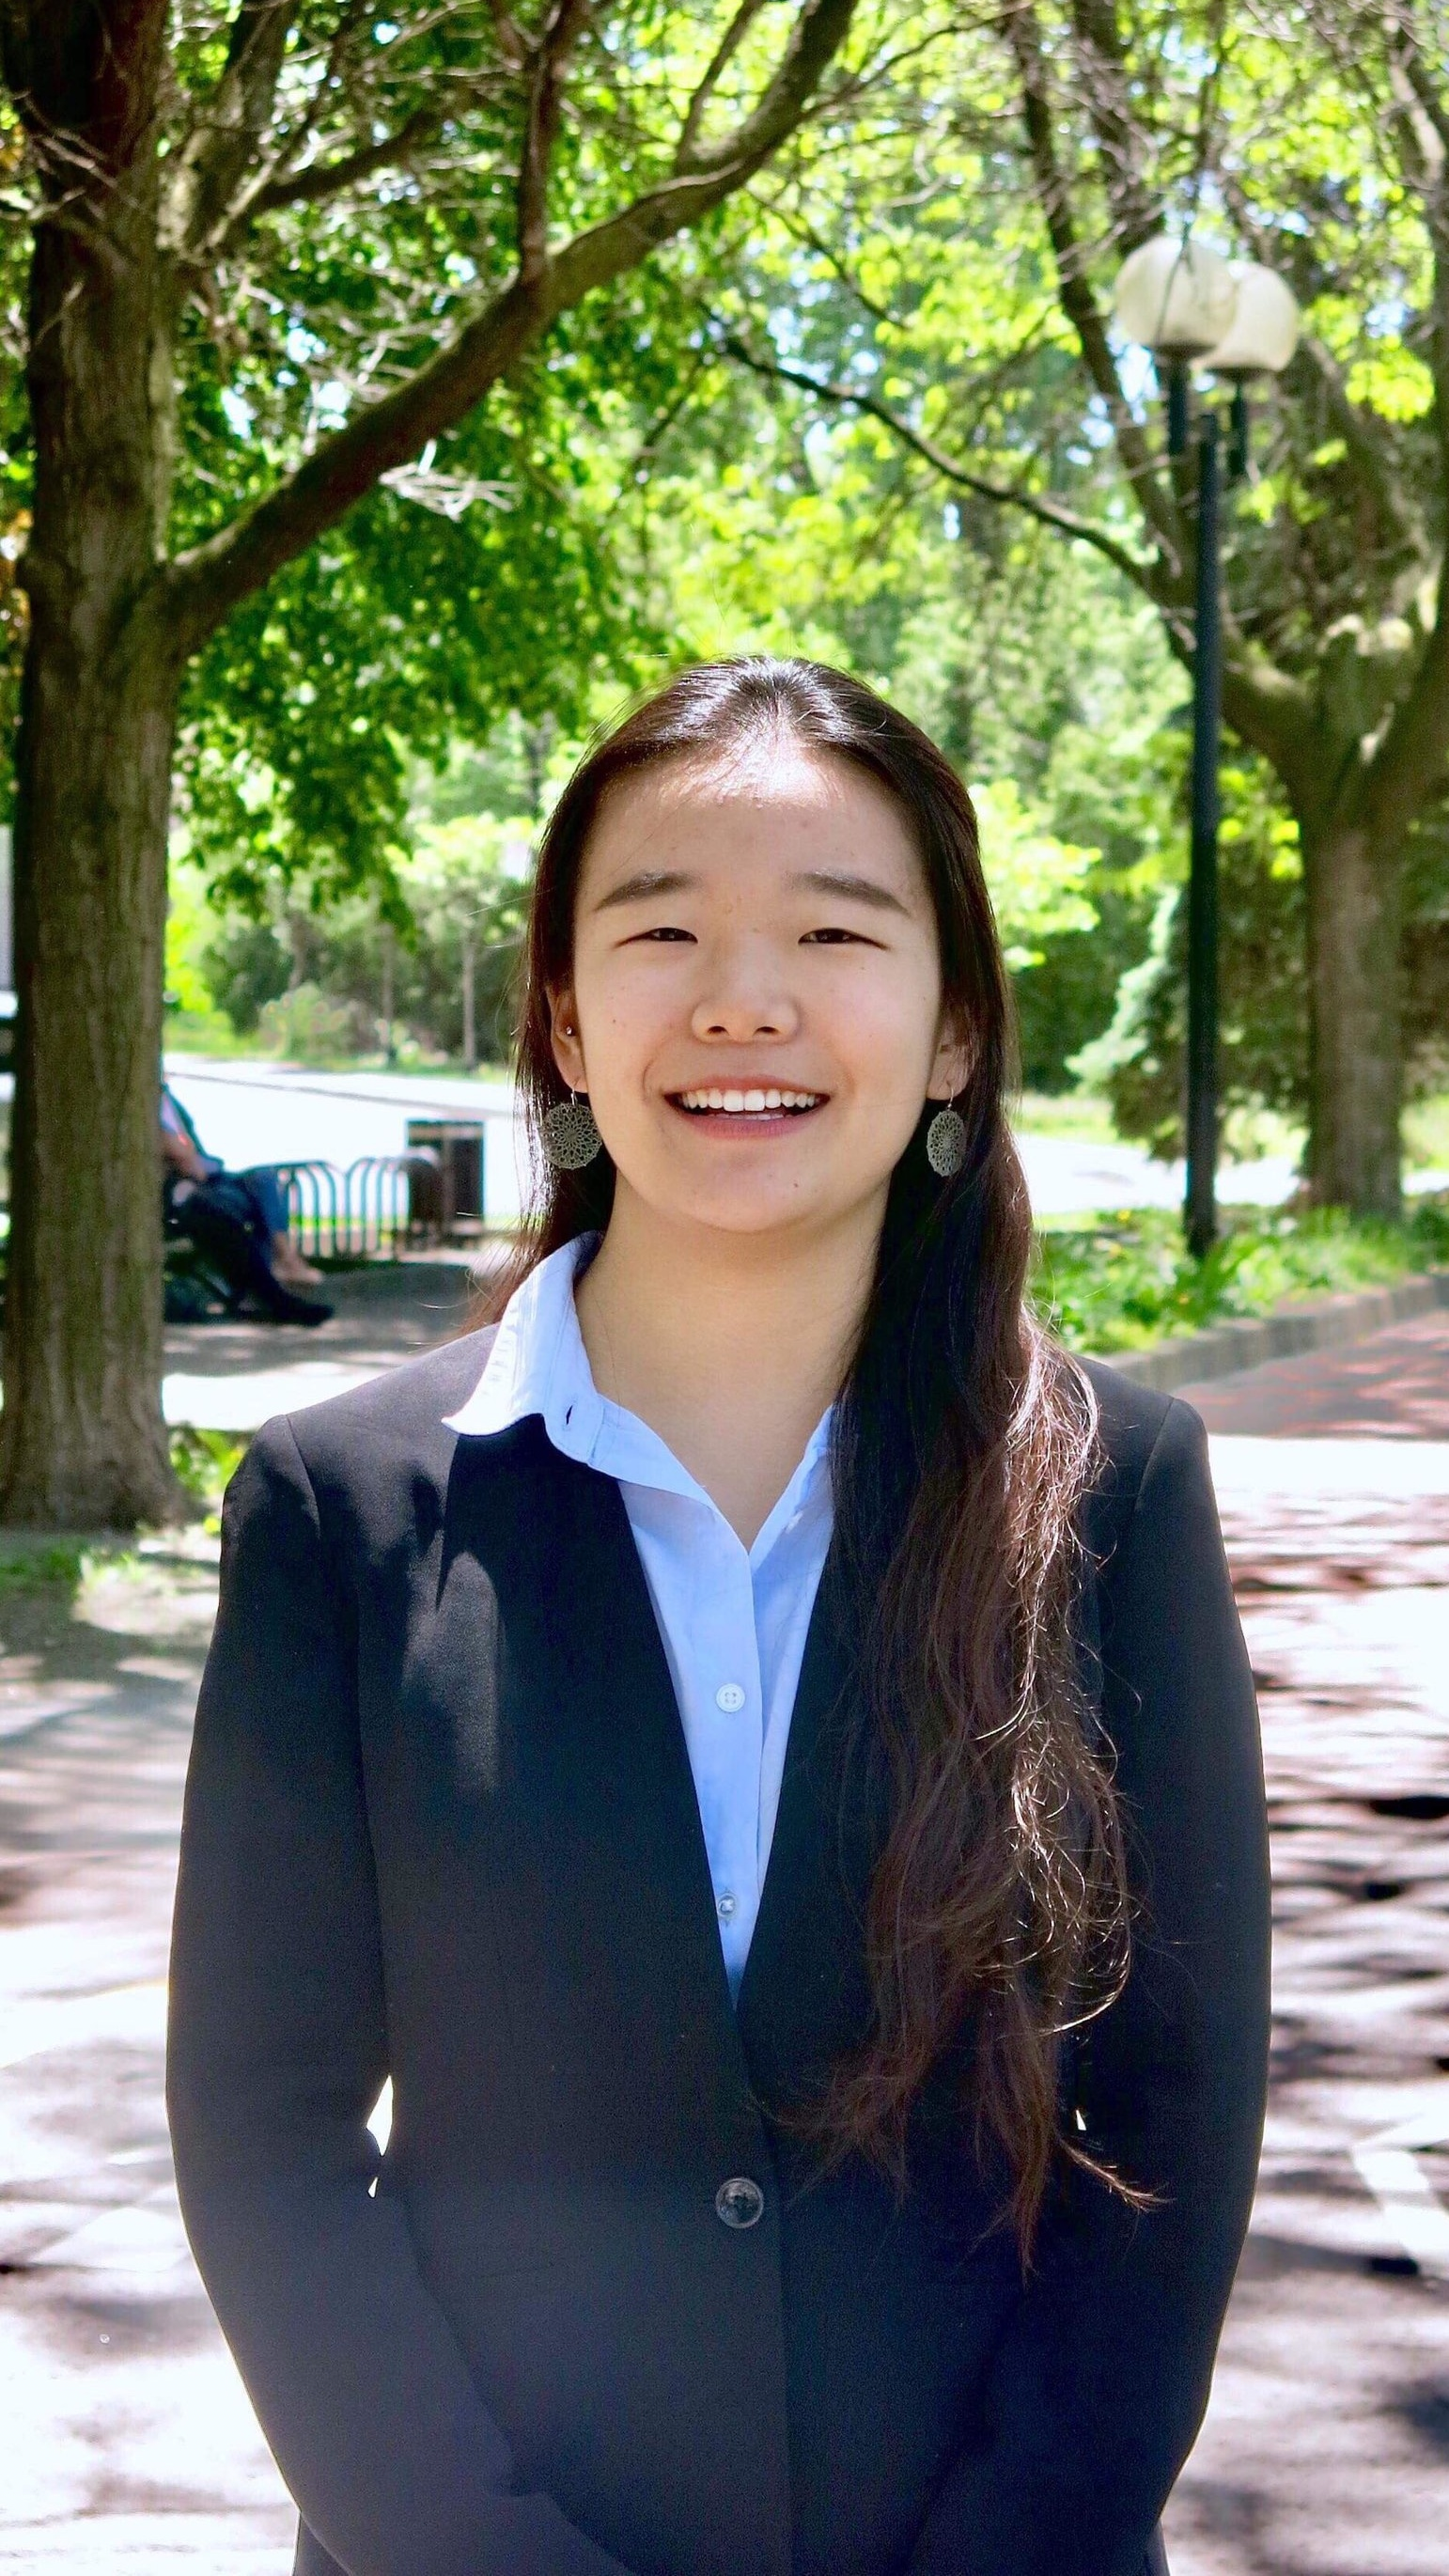 Chung Min Yoon Director of Communications - Major & Year: International Management, U2Hometown: Ulsan, Republic of Korea & Athens, GreeceWhat is your favorite city and why?Athens has been my home for the past 10 years. The liveliness in the streets, amazing coastlines, unique Greek culture, friendly local people and the list goes on. It opened countless opportunities with international experiences also (travelling, friends) and this eventually built who I am as a person in the present. This vibrant city led me to be interested in pursuing tourism/hospitality later in my career.What's on your bucket list?Finishing up my tour around the remaining countries in Europe is definitely the first in my bucket list. Although they seemed to have similar cultural backgrounds, each country had its own distinct and eccentric lifestyles, and discovering such has been an unforgettable experience.Where do you see yourself in 5 years?I see myself moving back to Europe to continue my studies in business, more specifically in tourism and hospitality. Then I would love to build up my experiences in organizations that are passionate about integrating the significance of cultures with business.